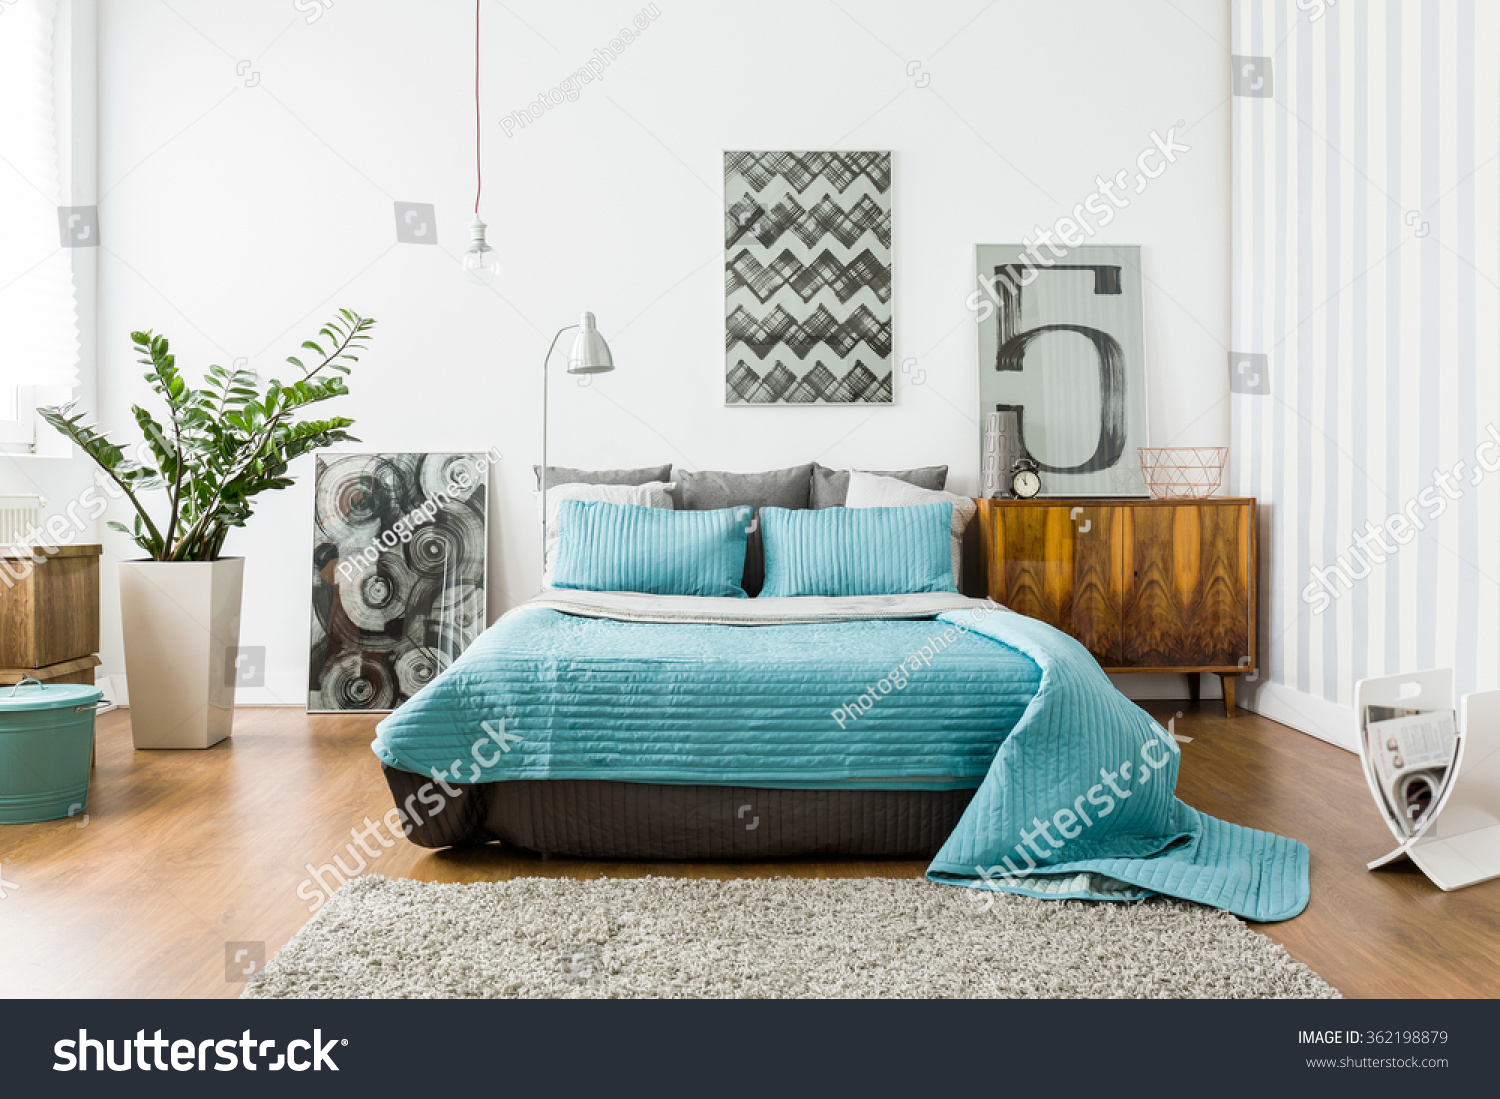 interior cozy bedroom modern design stock photo 362198879 shutterstock. Black Bedroom Furniture Sets. Home Design Ideas